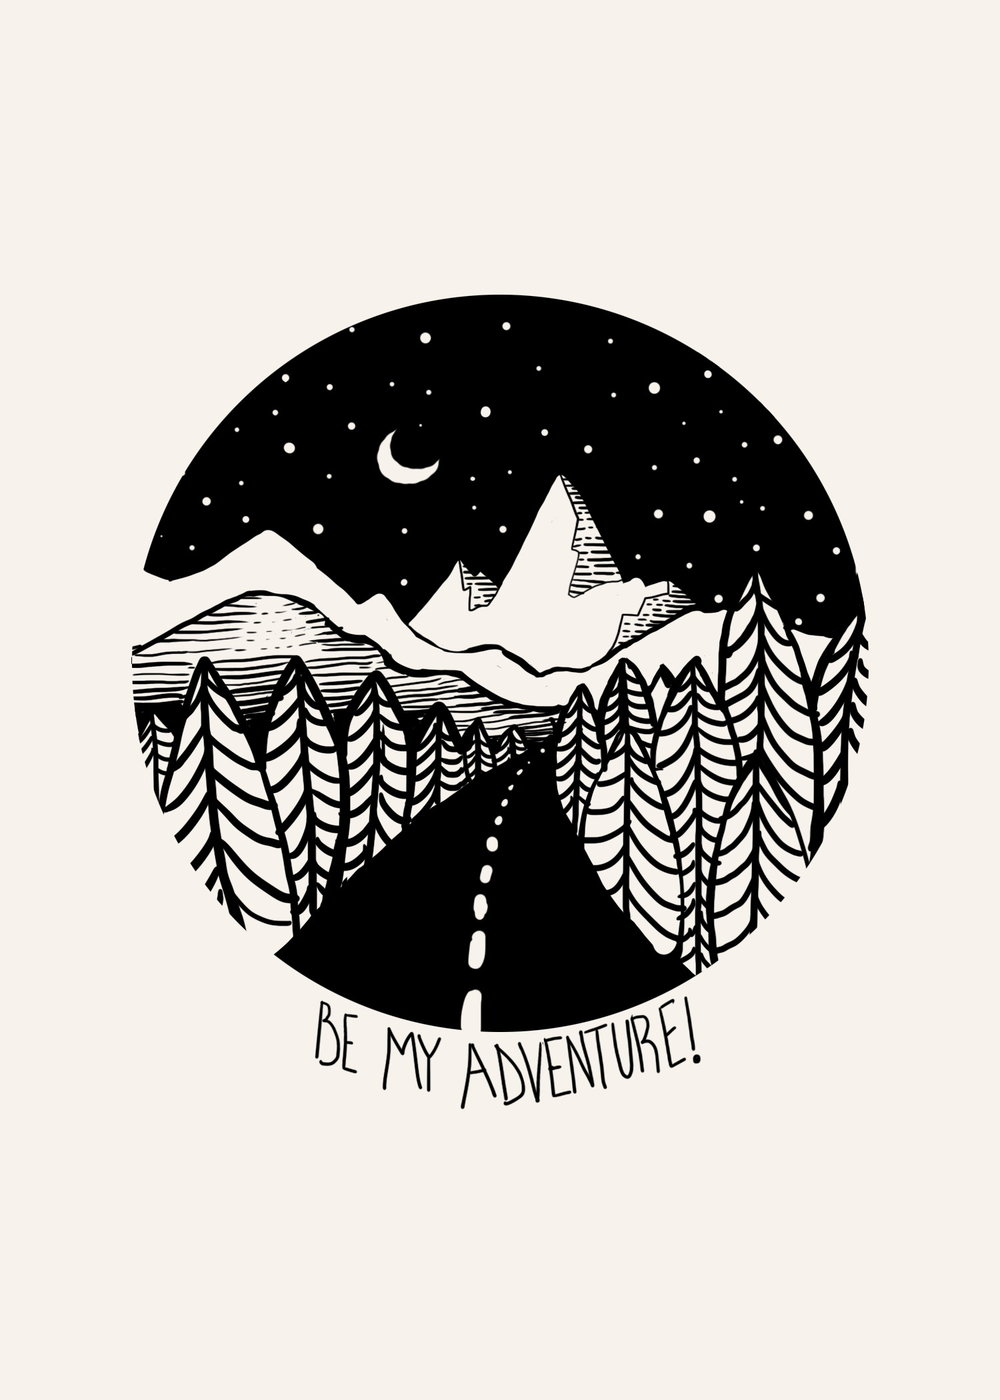 Be My Adventure!